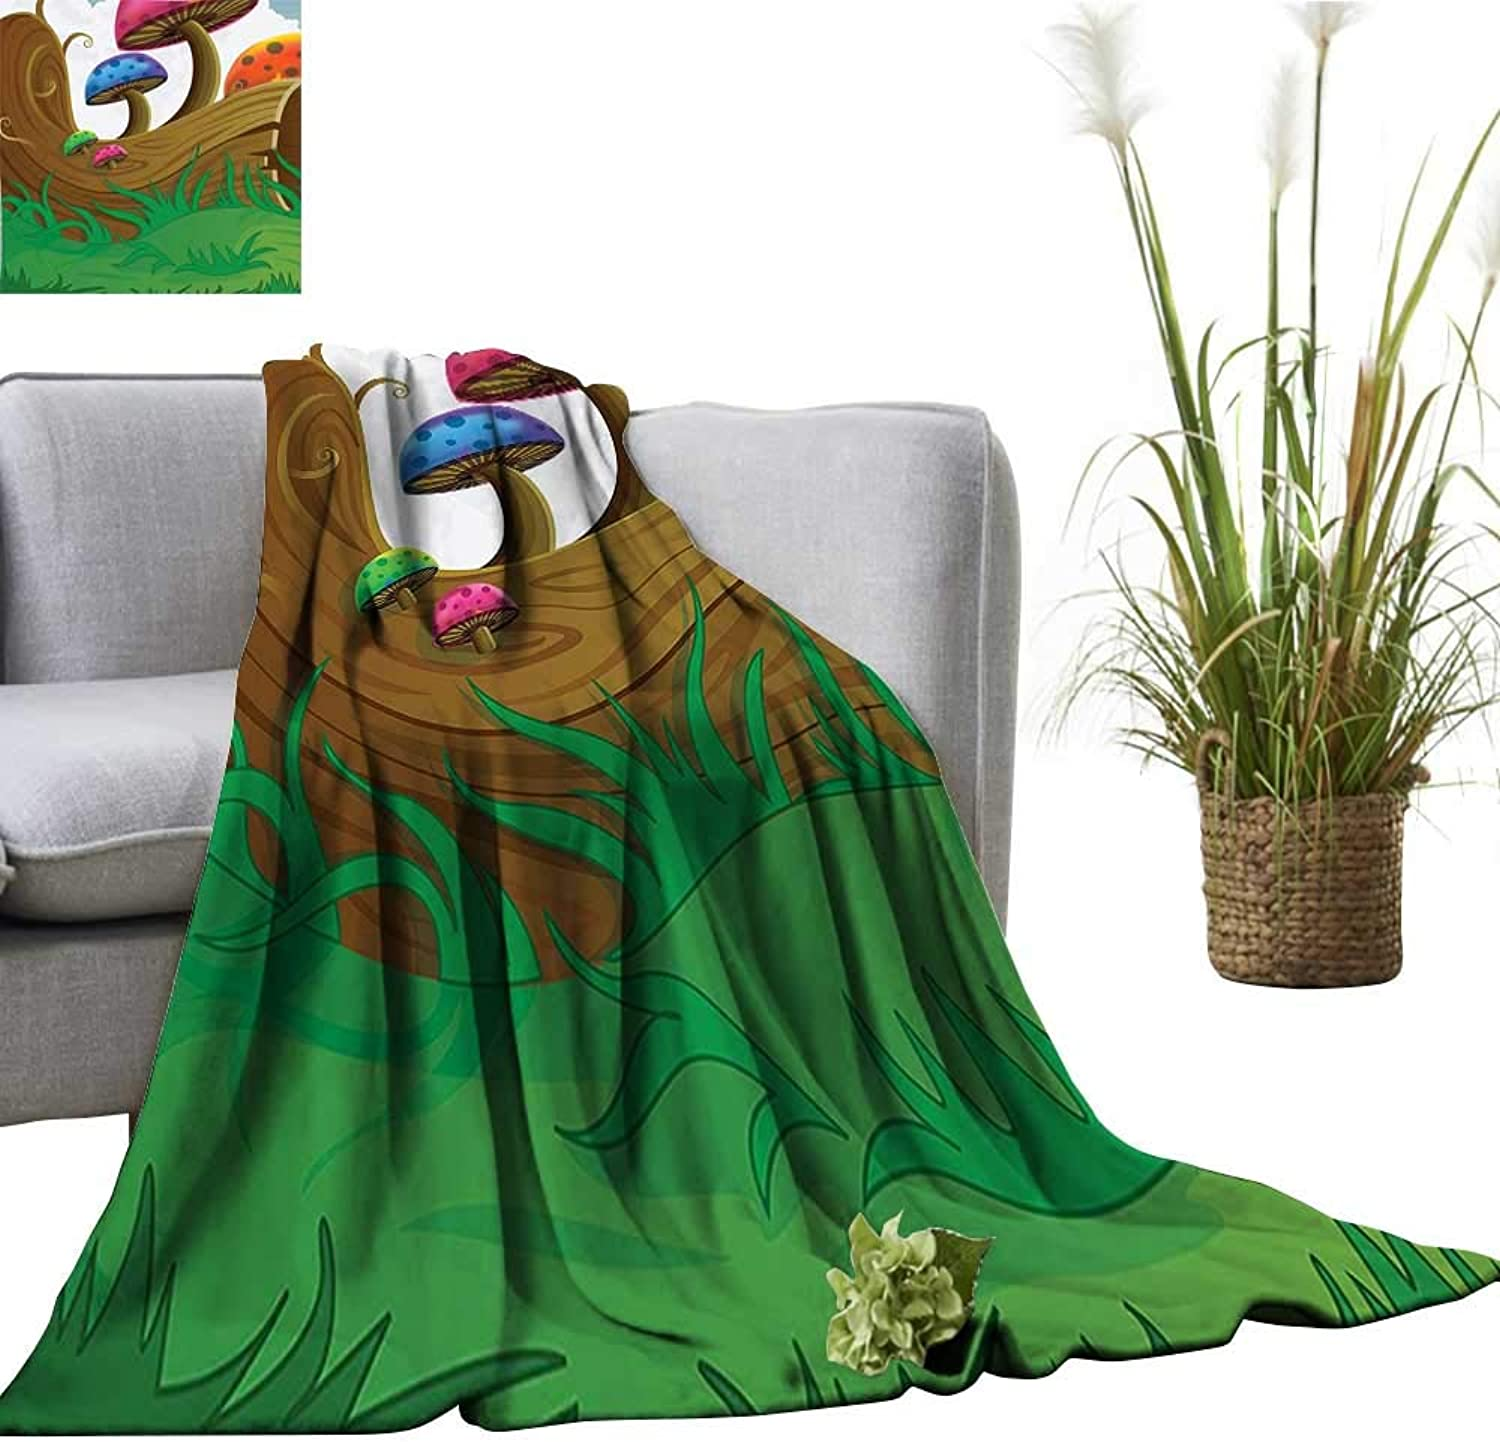 YOYI SingleSided blanketCountryside Sunny Playful Environment Foliage Rainbow Vibrant colors Spring Scene Kids Roo for Bed & Couch Sofa Easy Care 60 x70